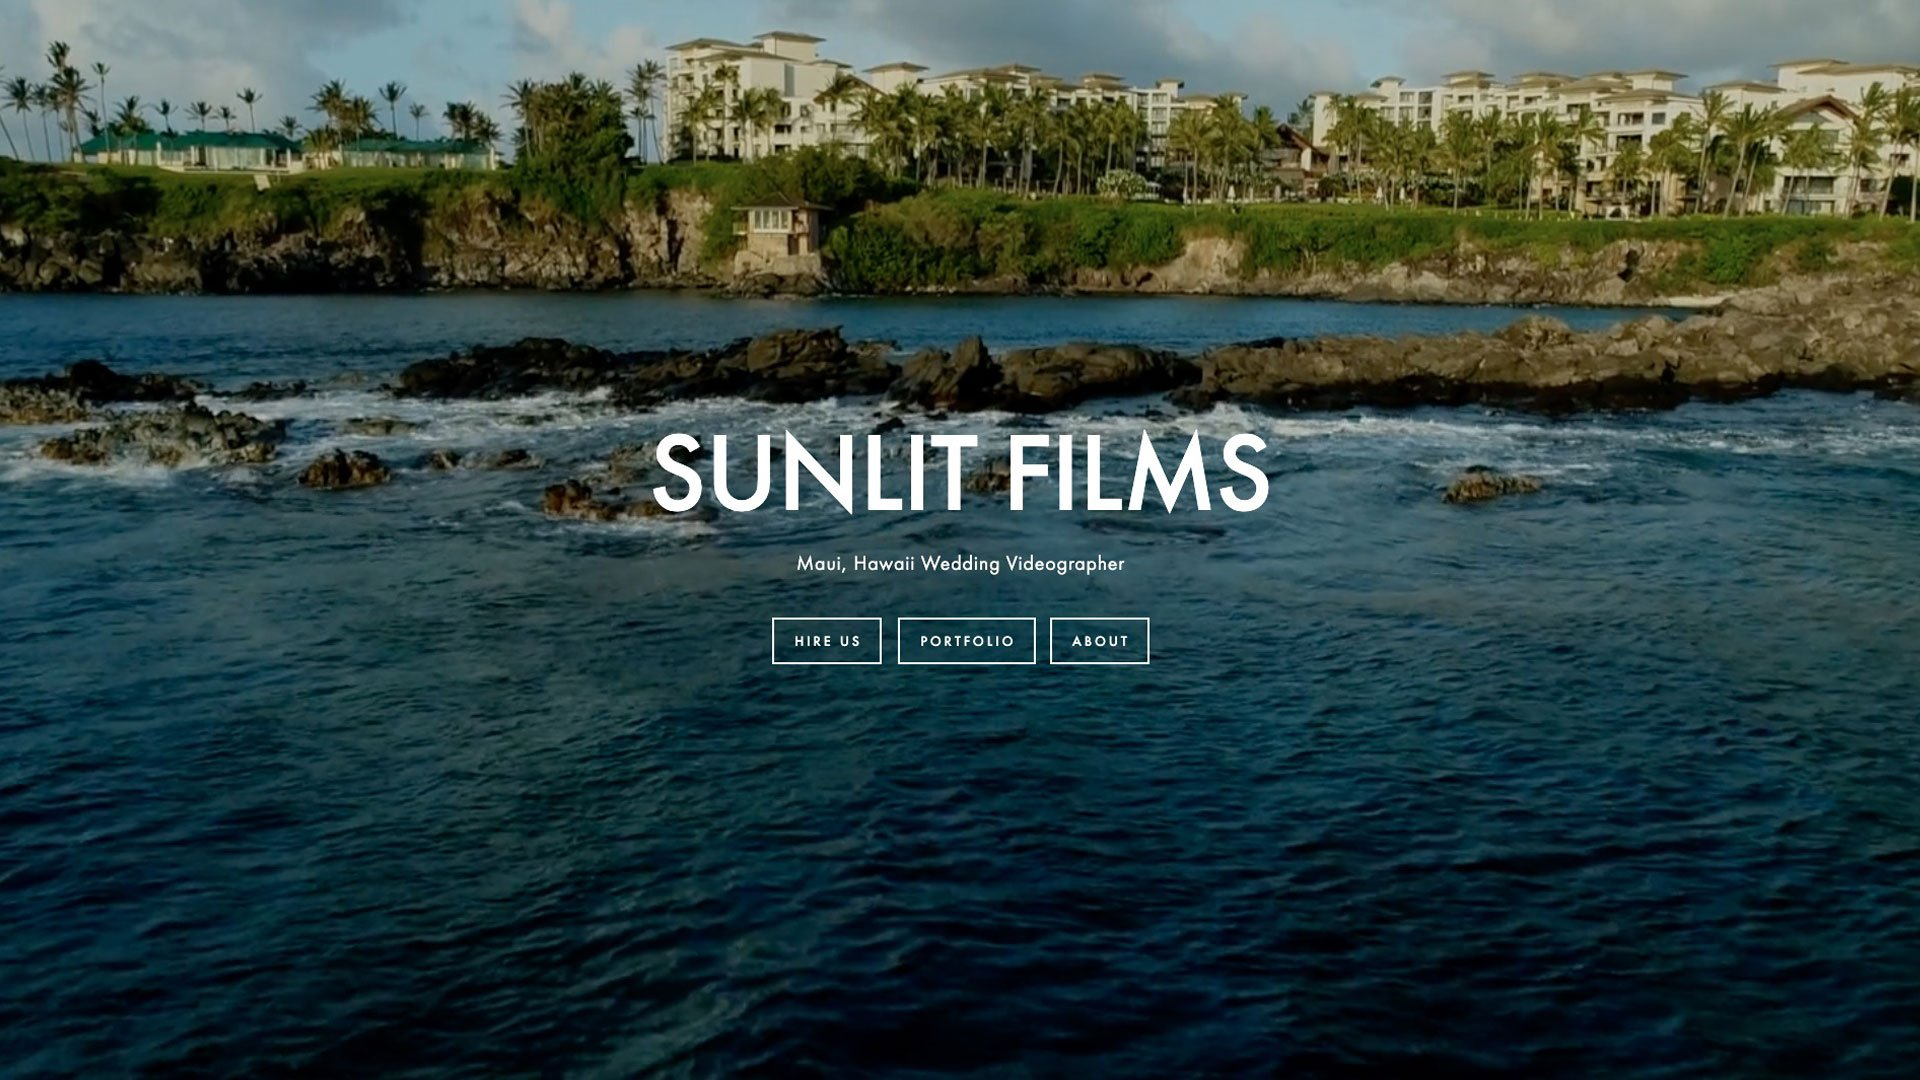 A Photo Of Sunlit Films Landing Page